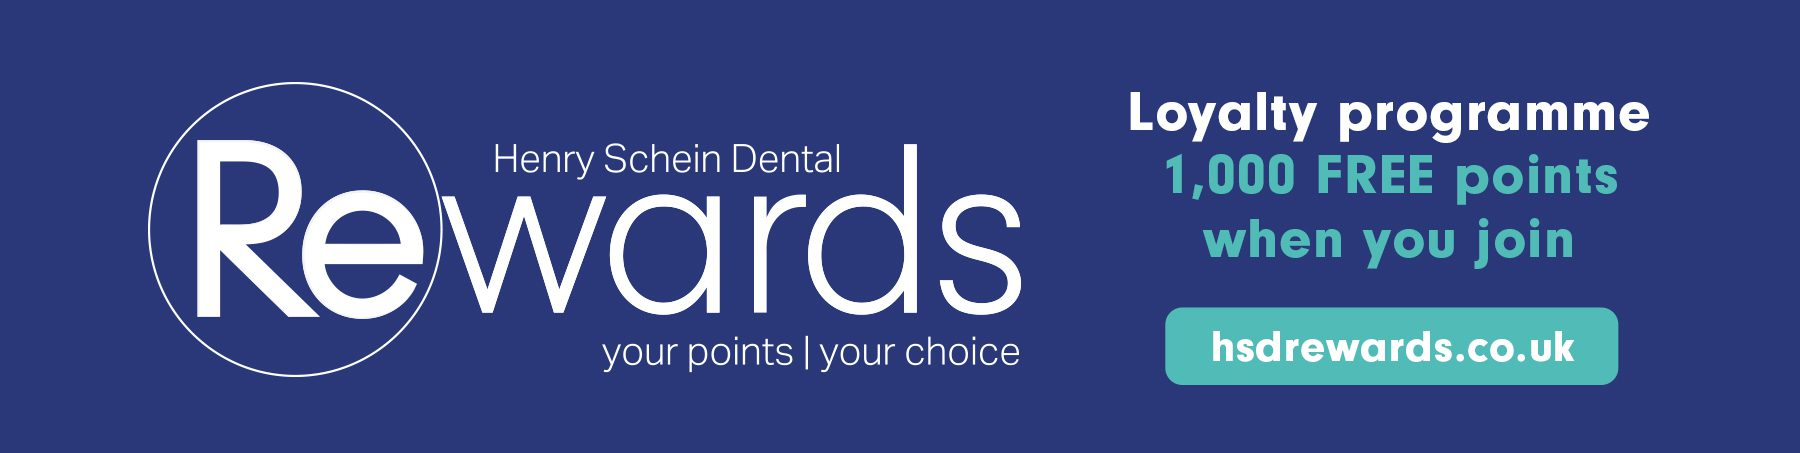 Henry Schein Dental Rewards - your points| your rewards - Loyalty programme: 1,000 FREE points when you join.